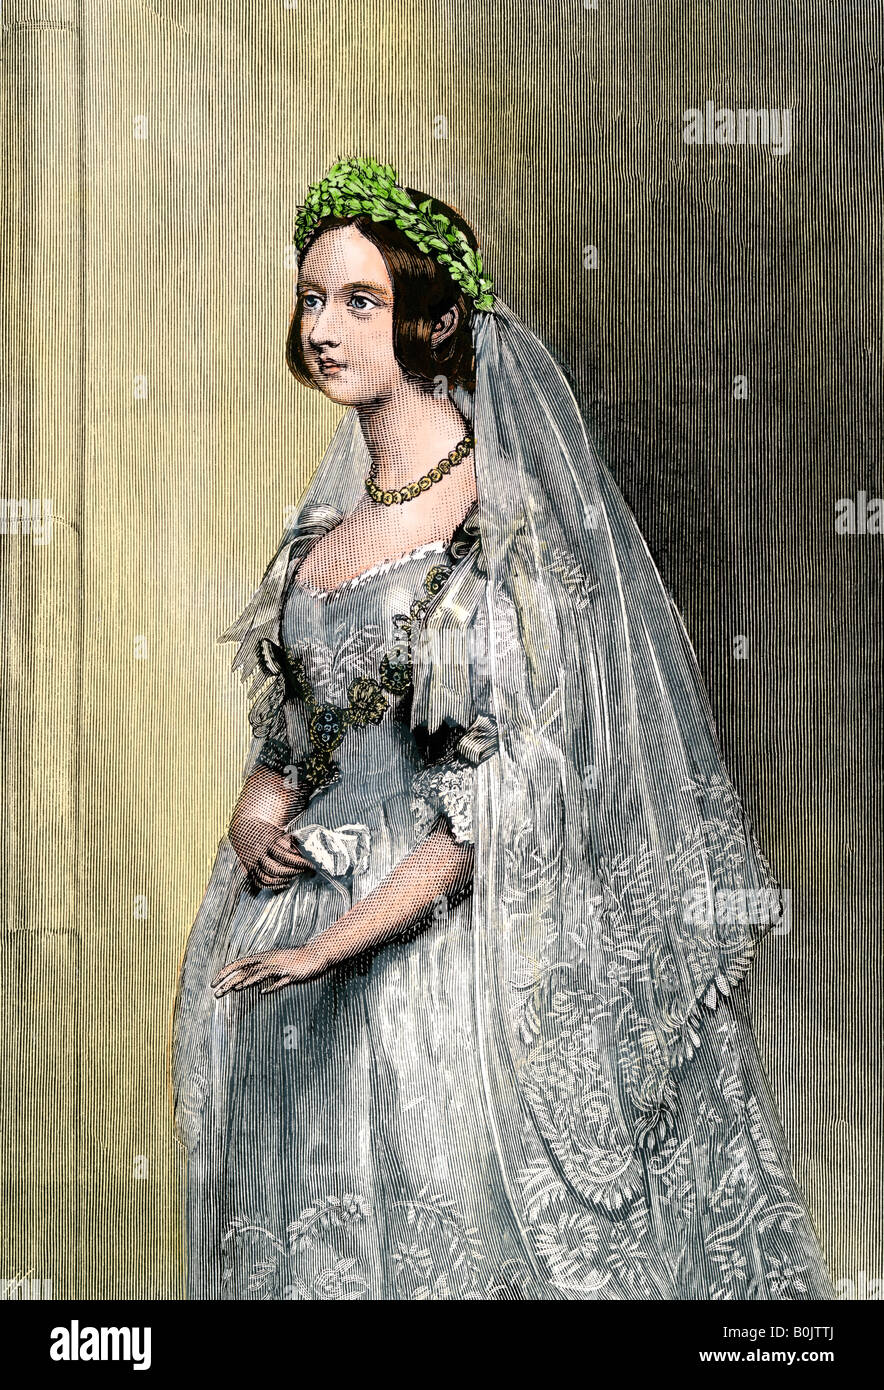 Queen Victoria on her wedding day. Hand-colored woodcut - Stock Image